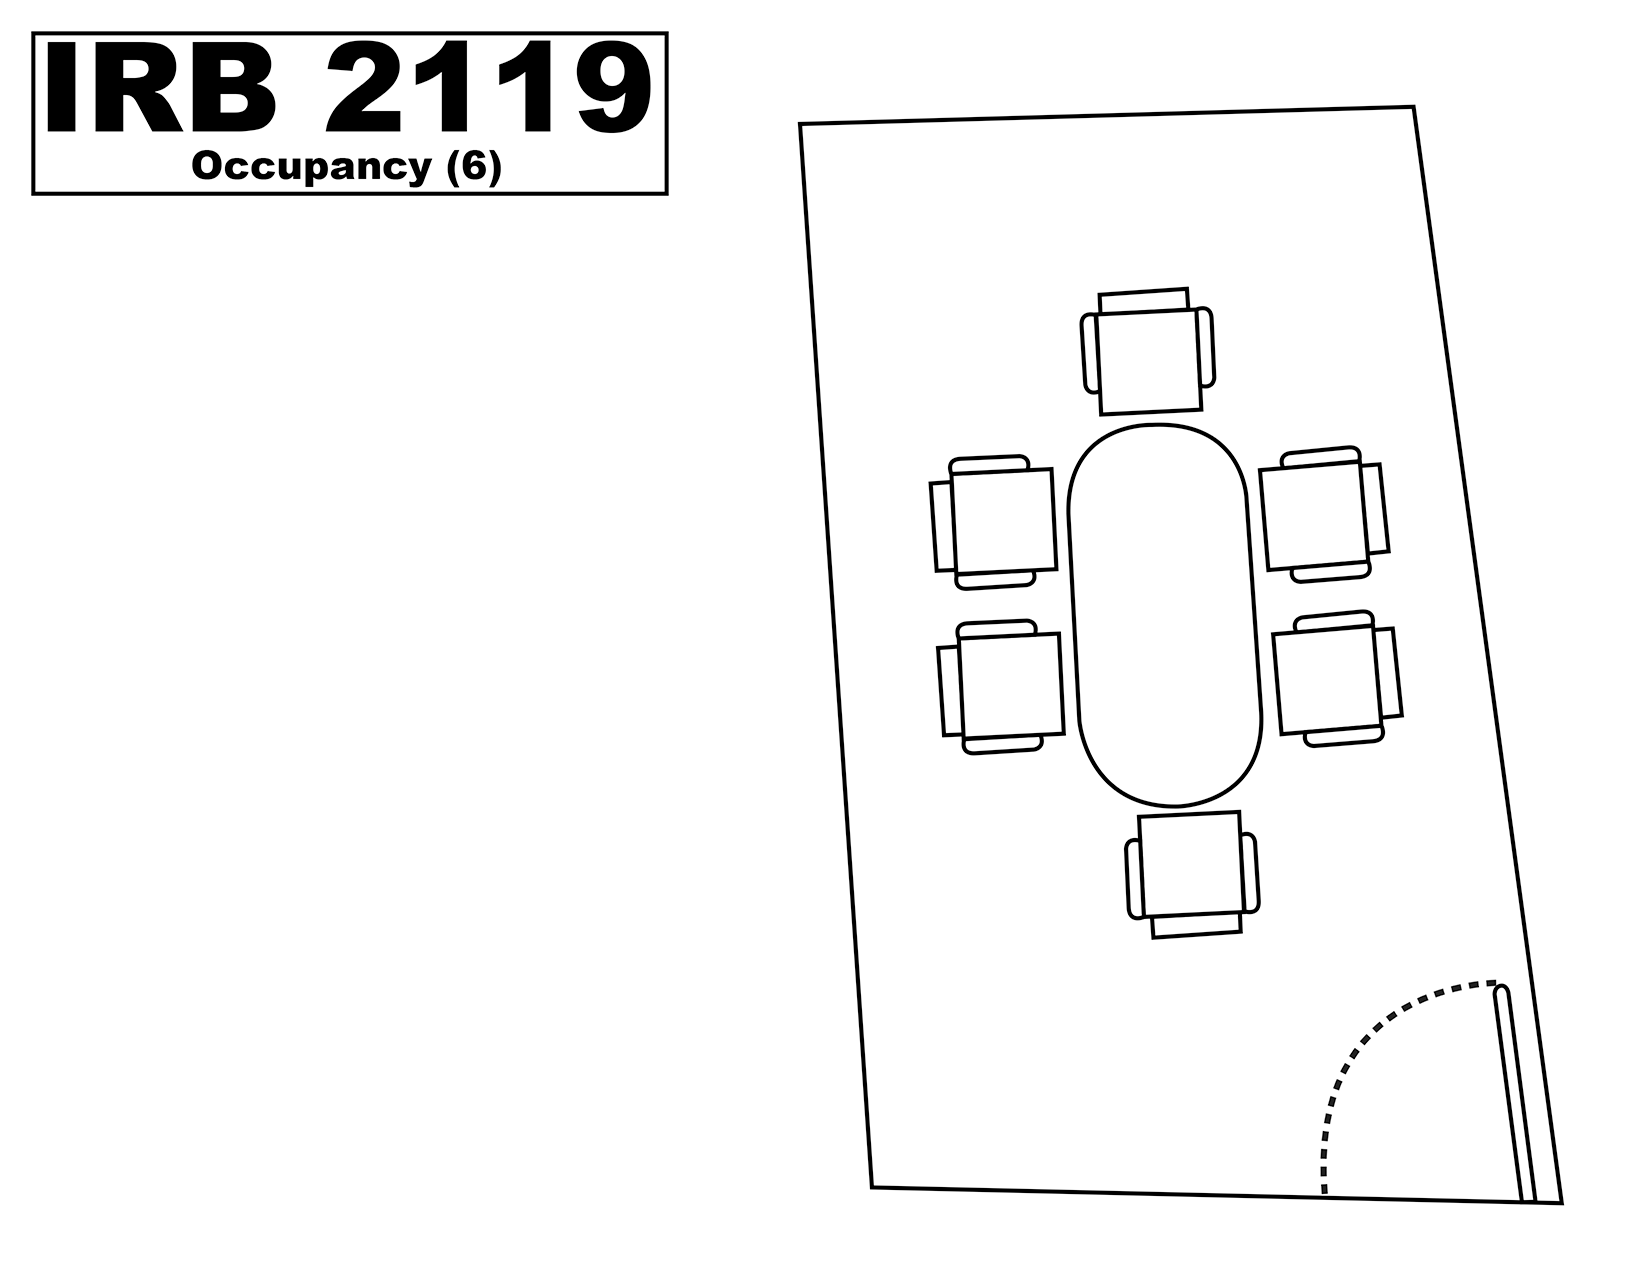 IRB2119 floorplan